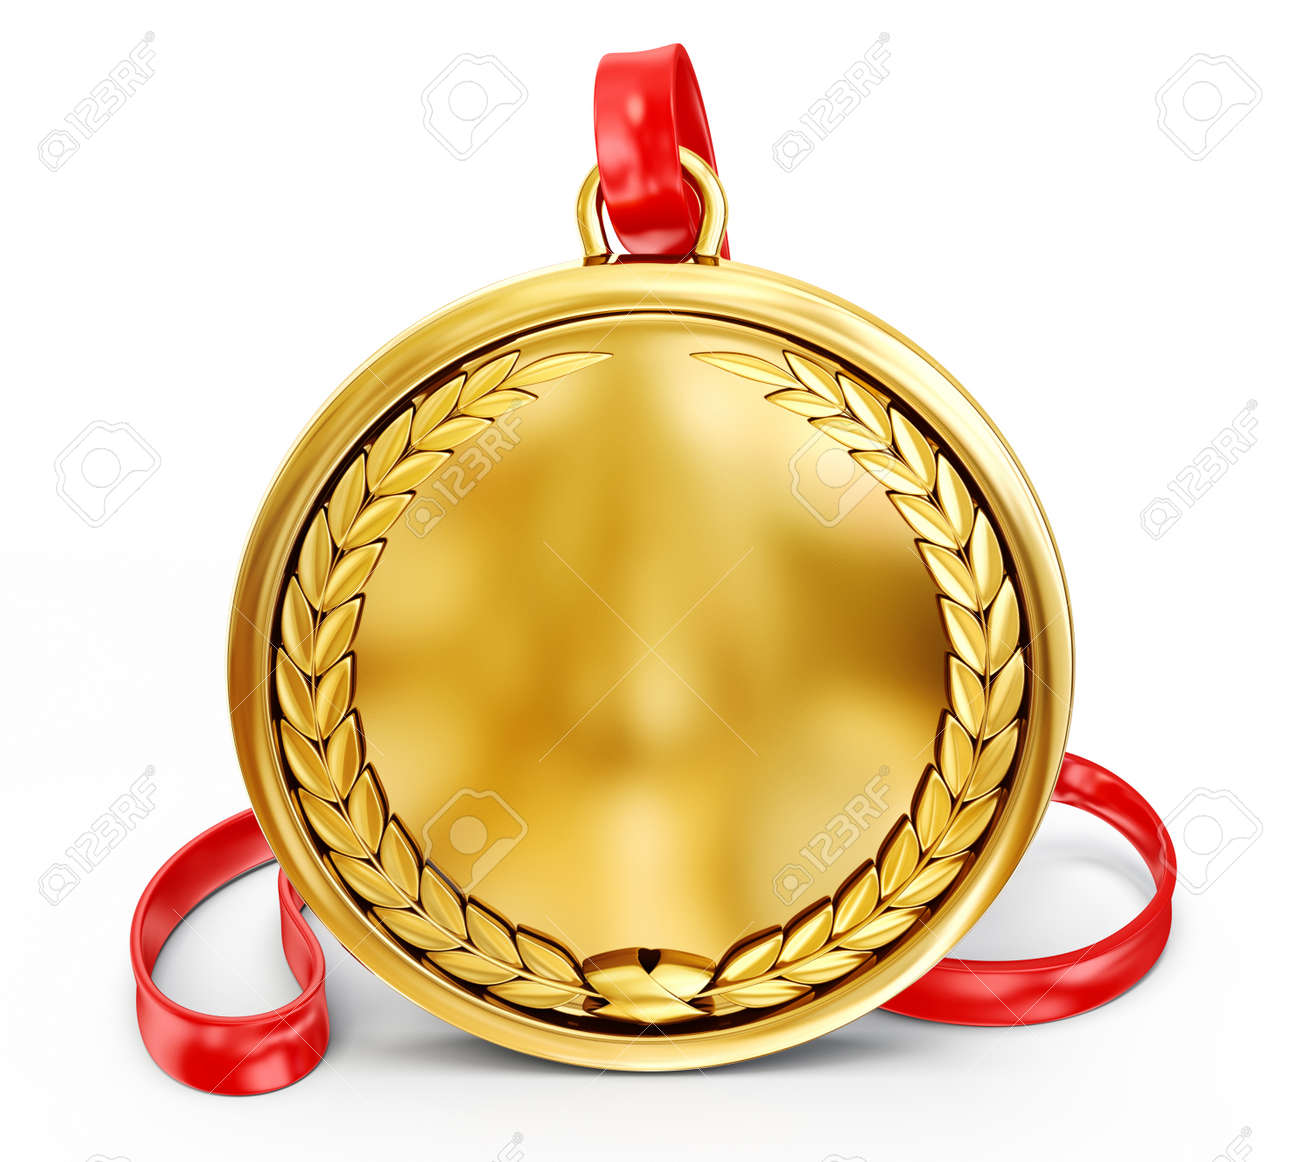 gold medal isolated on a white background - 29027359